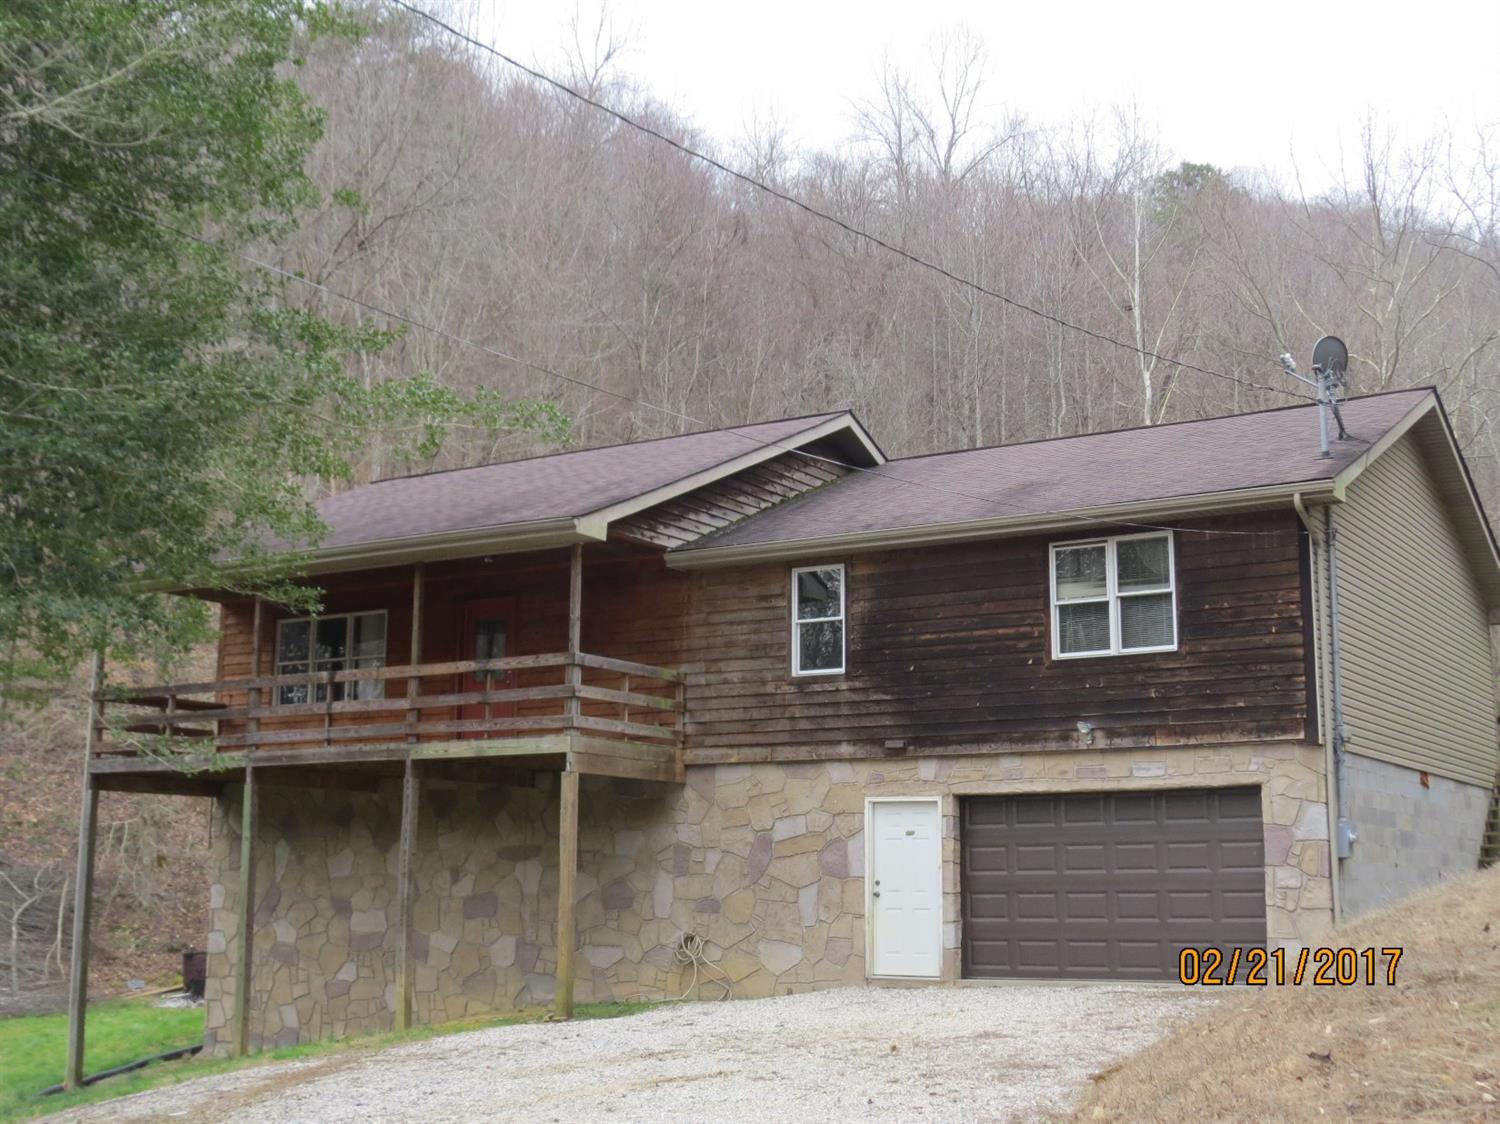 273 HOWARD DR, WALLINS, KY 40873